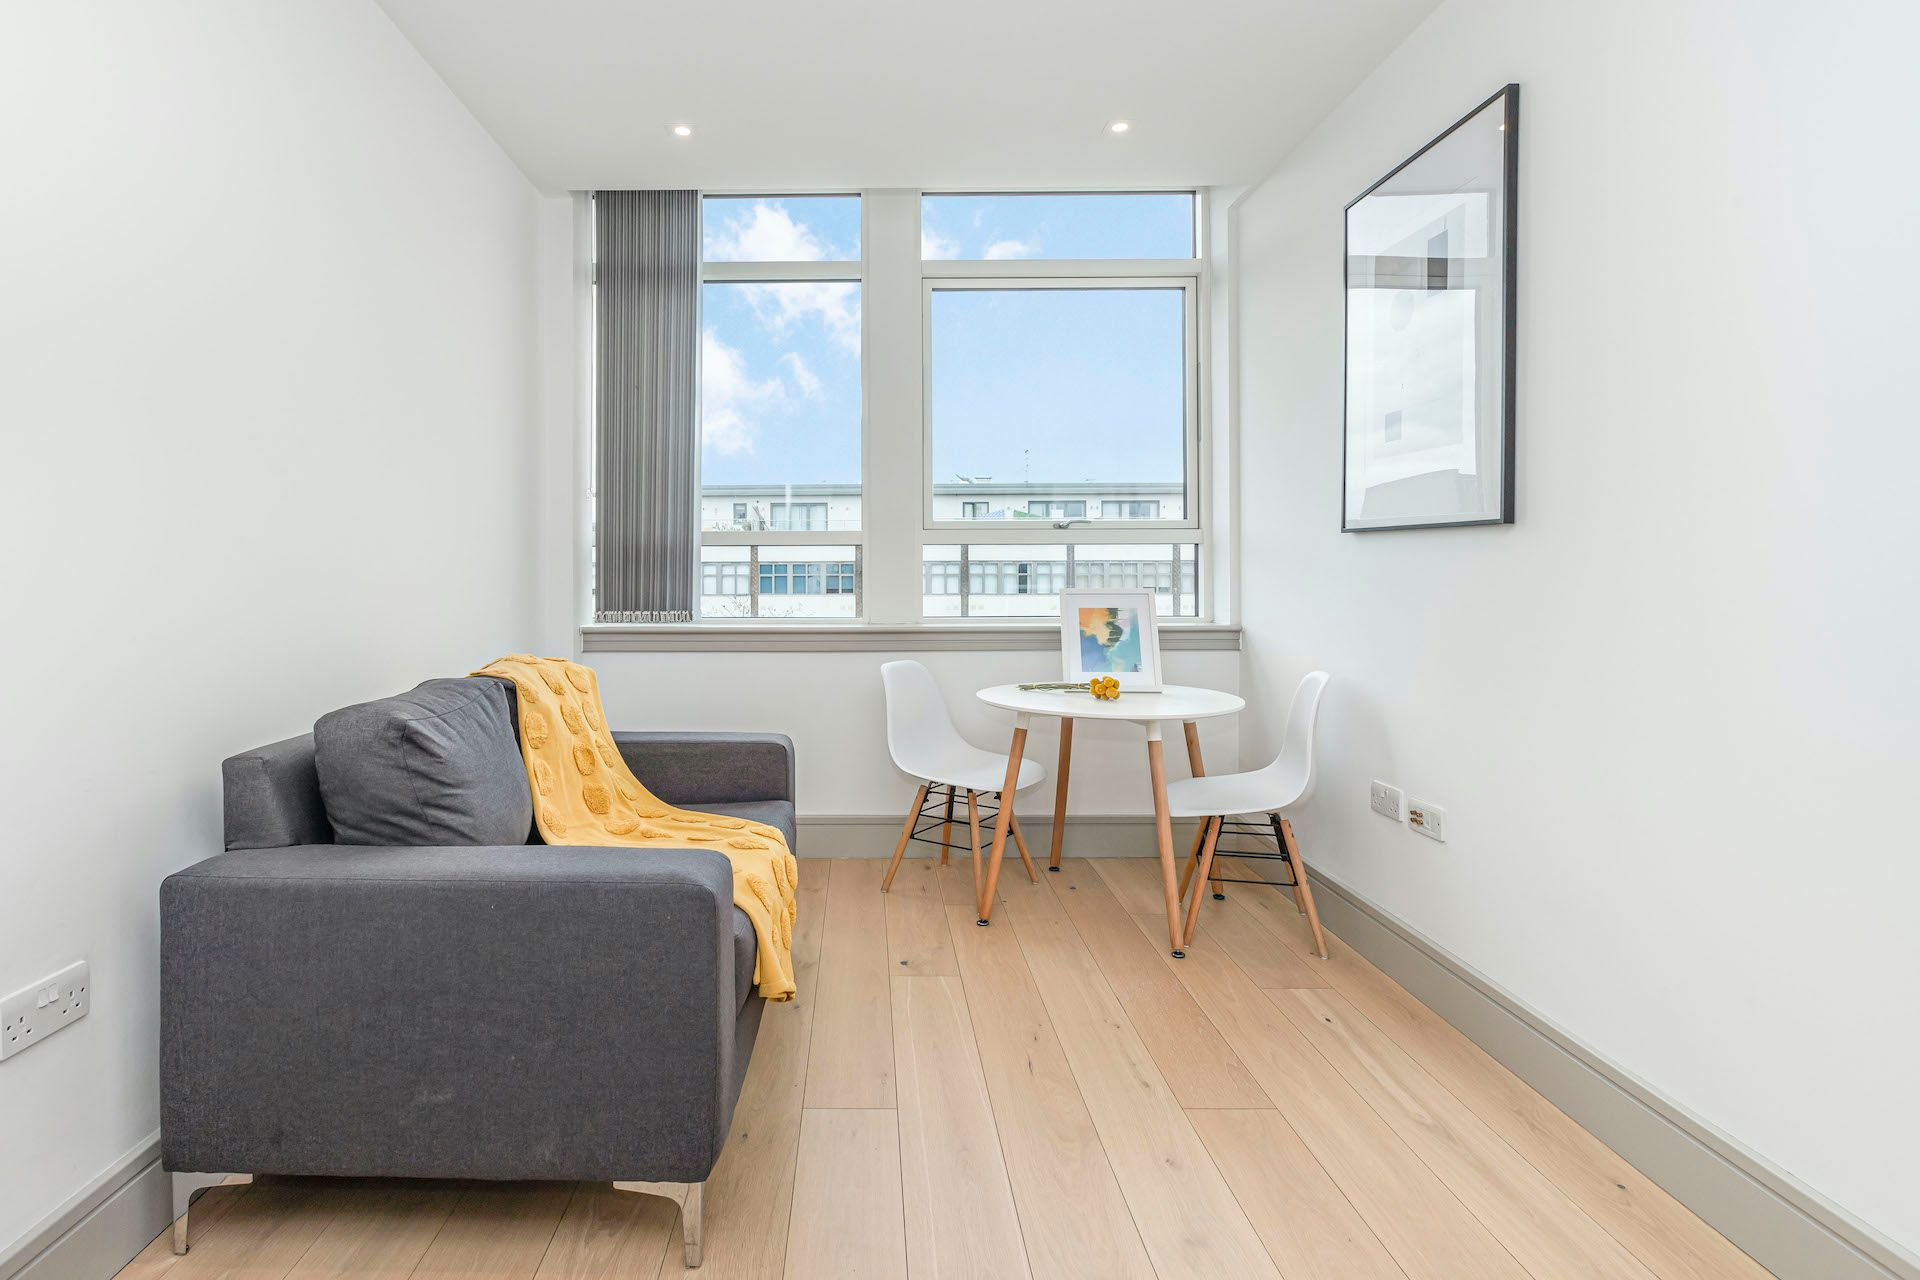 1 Bedroom apartment to rent in London BRO-BH-0052